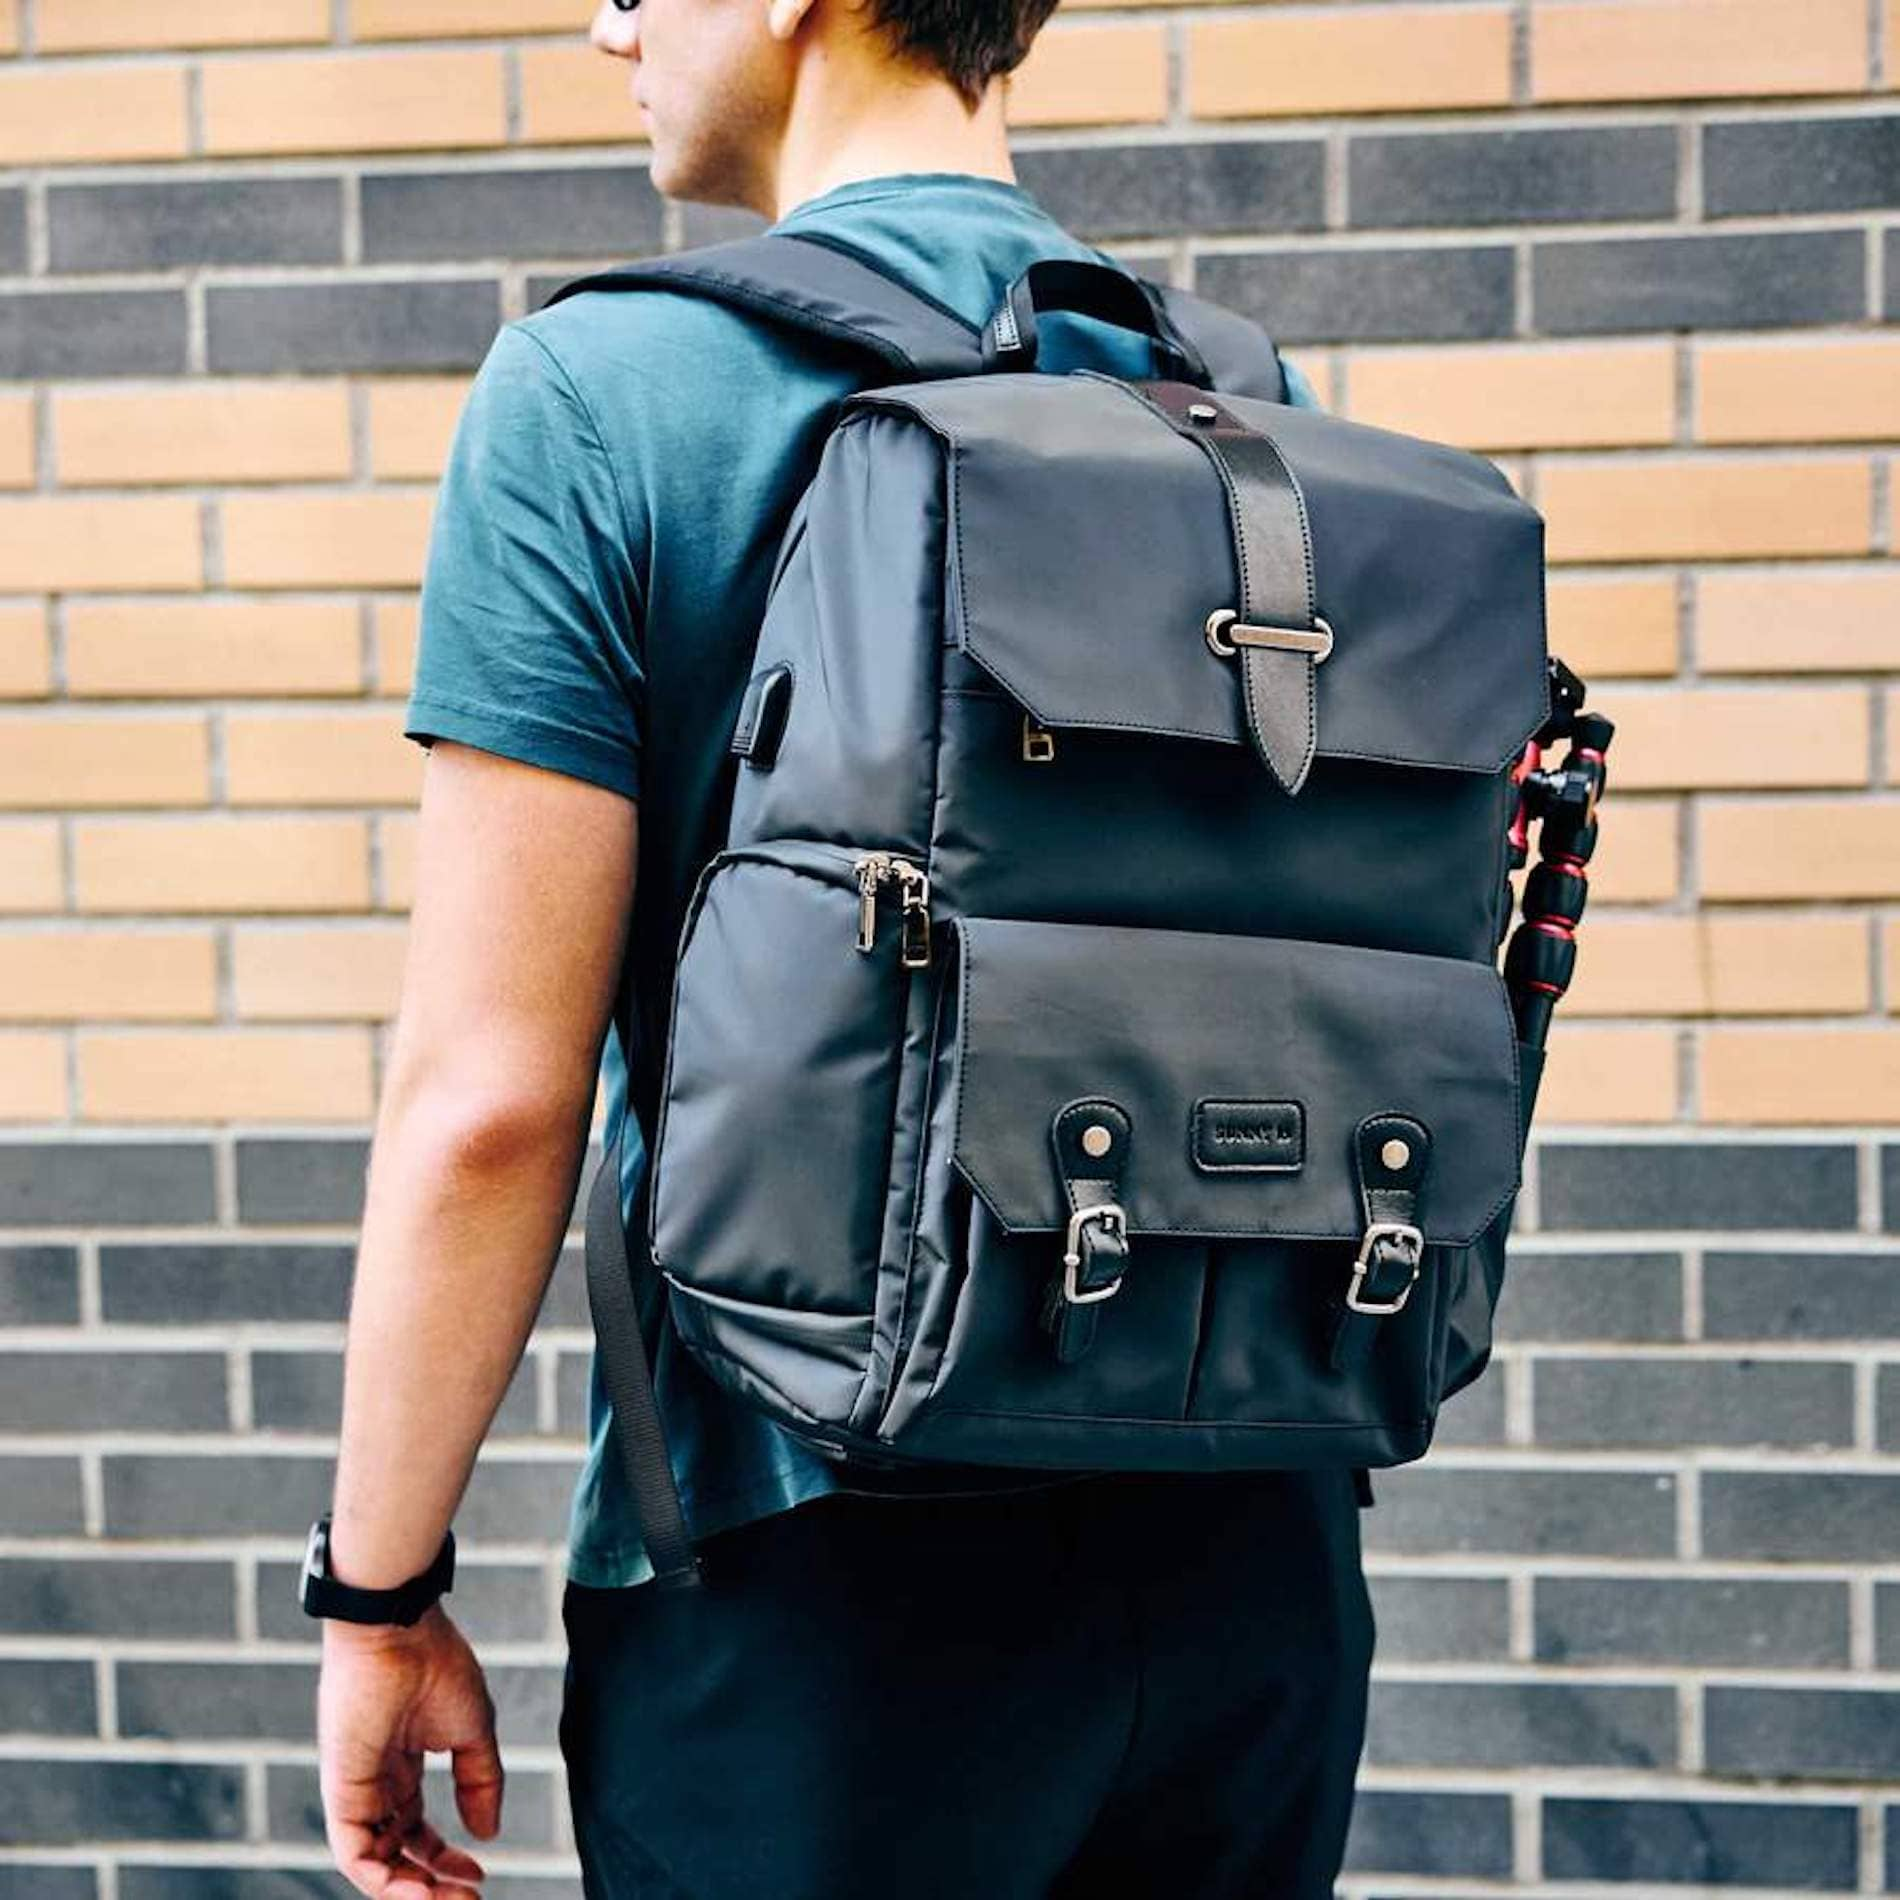 How to Start a Photography Business - The Voyager Camera Backpack